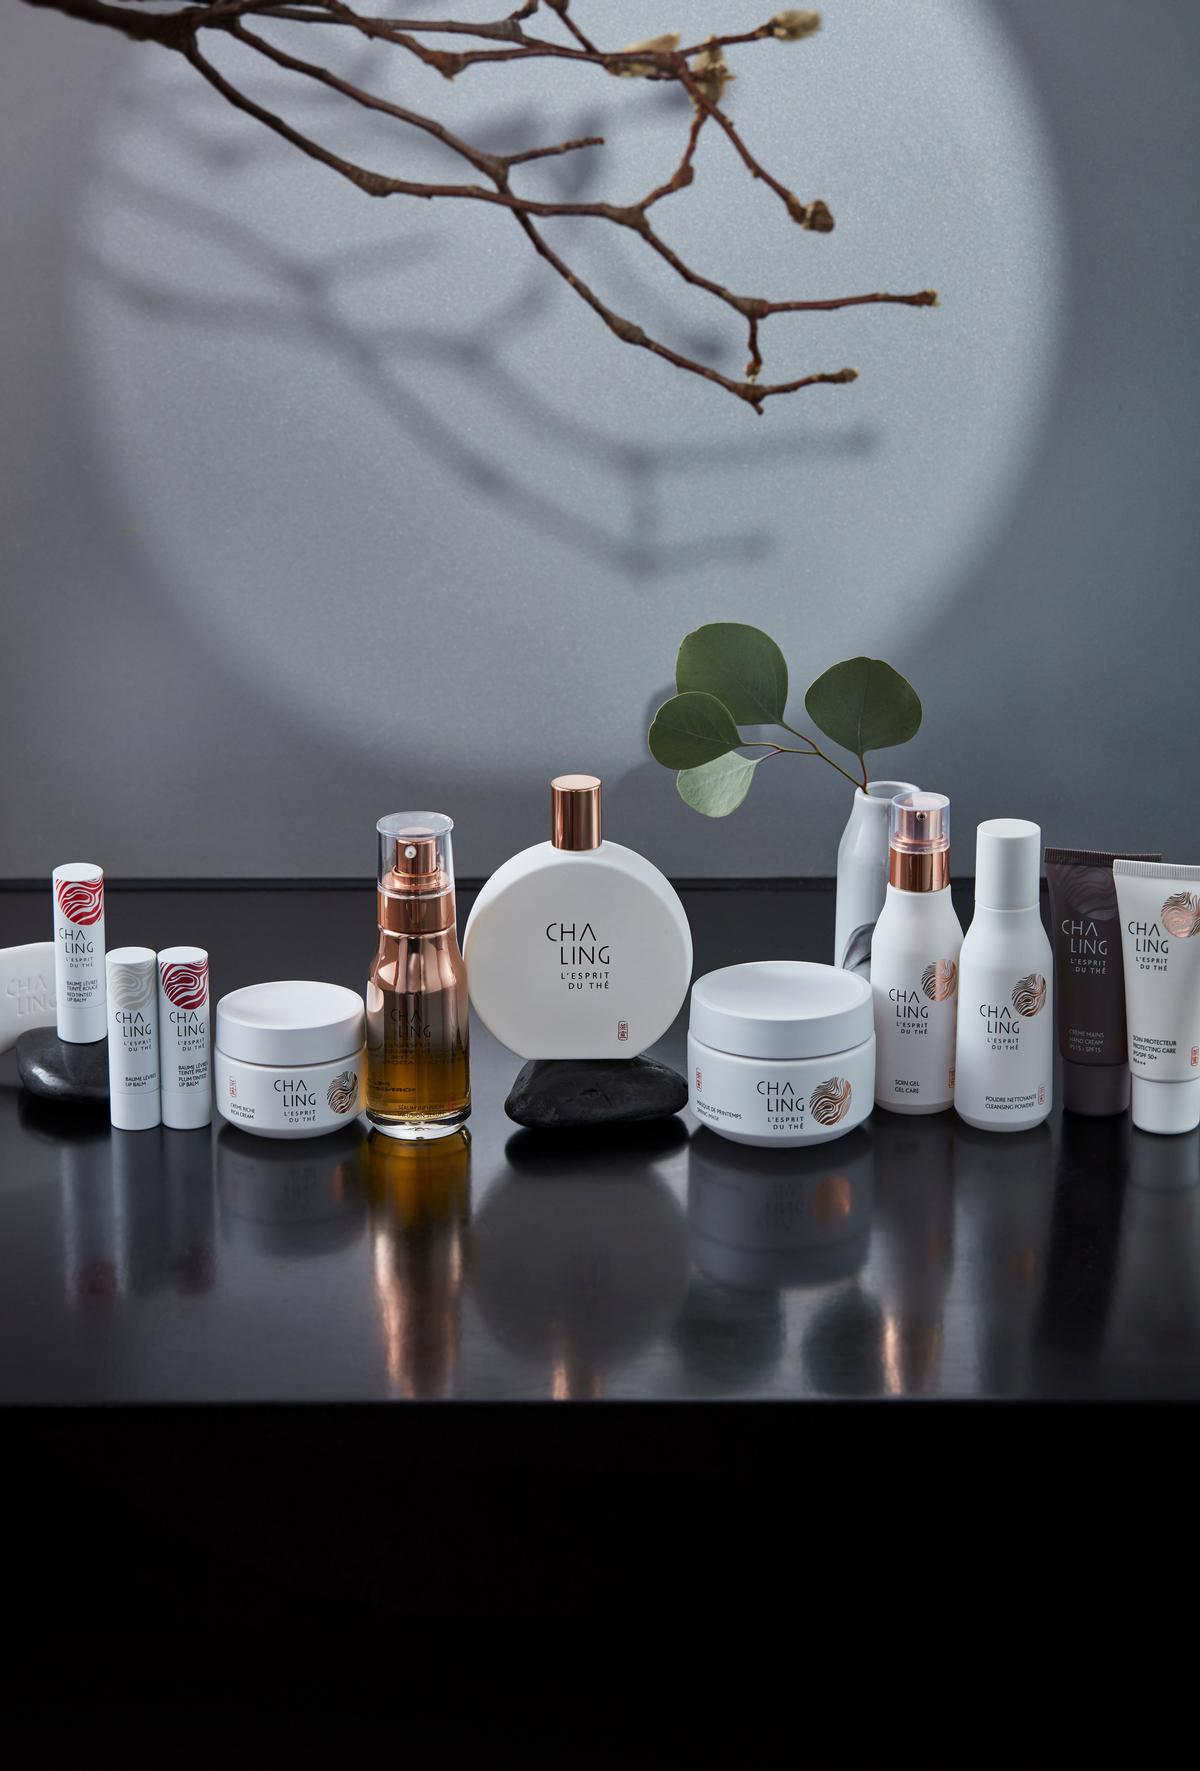 CHA LING was co-founded by Laurent Boillot, the CEO of Guerlain.